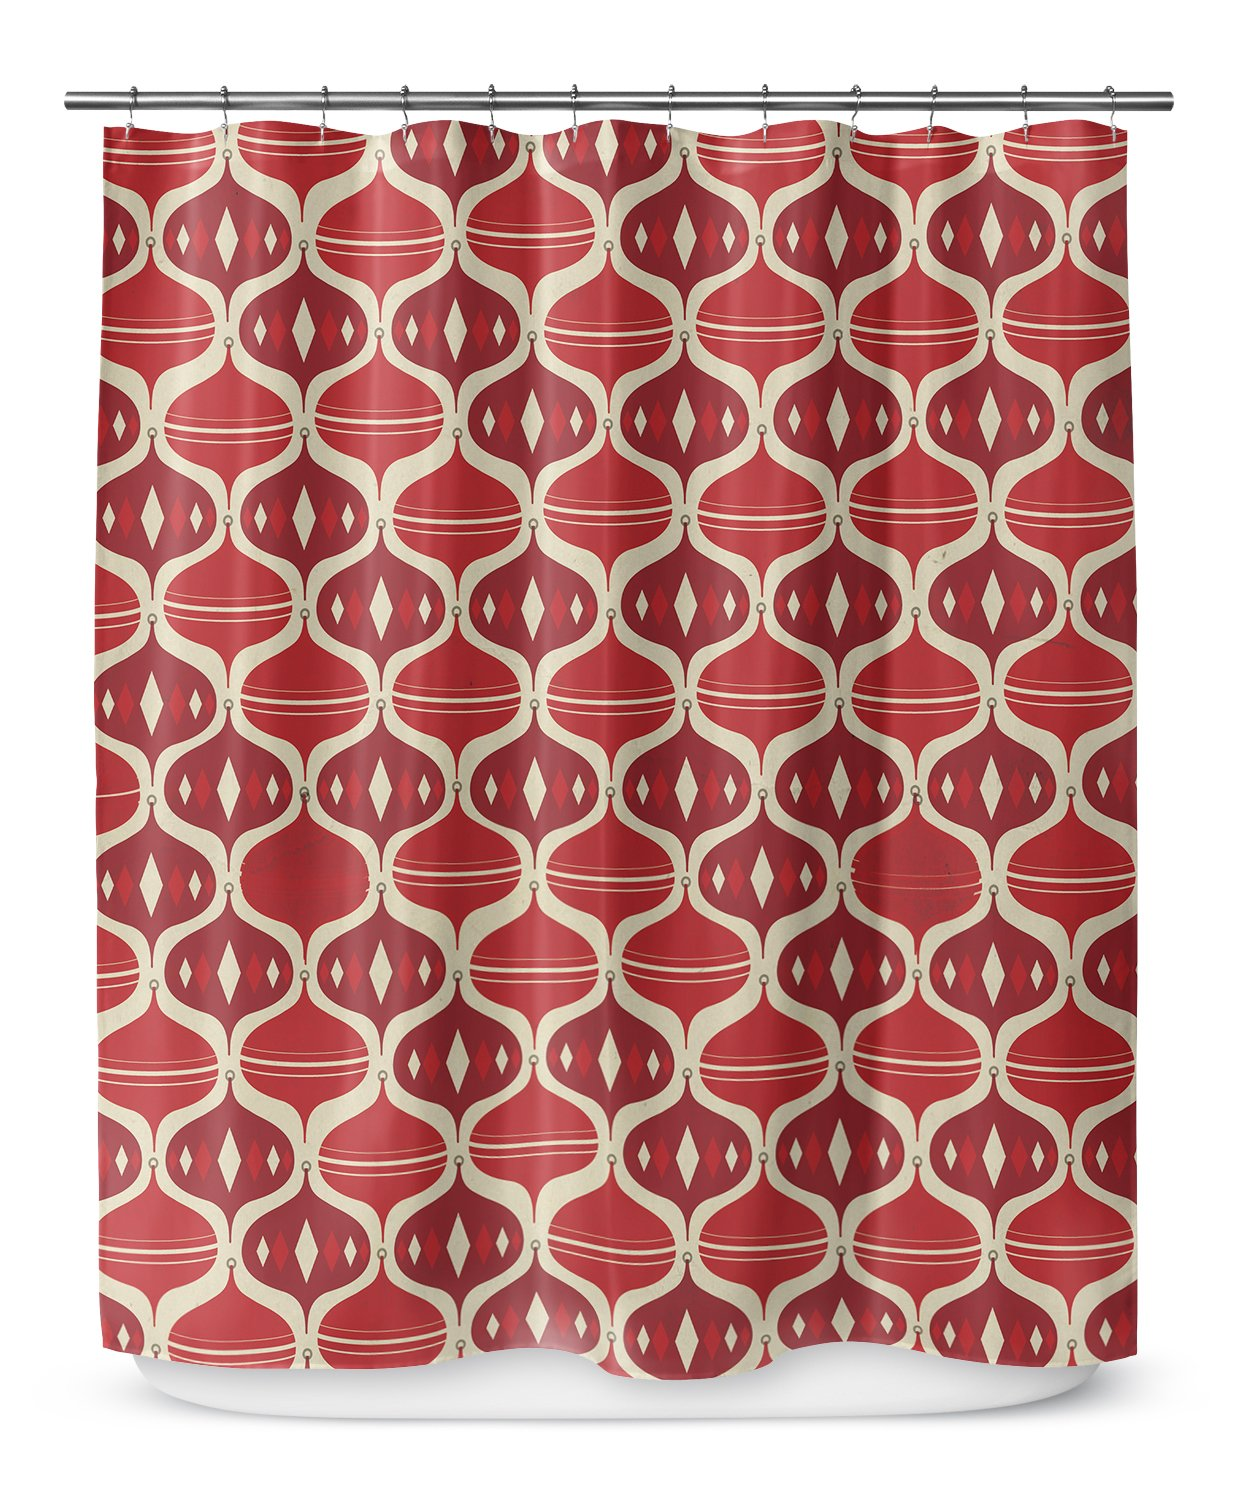 - TRADITIONS Collection KAVKA Designs Shower Curtain Shower Curtain, TELAVC1372SPLSC Size: 70x72 - Red//Ivory